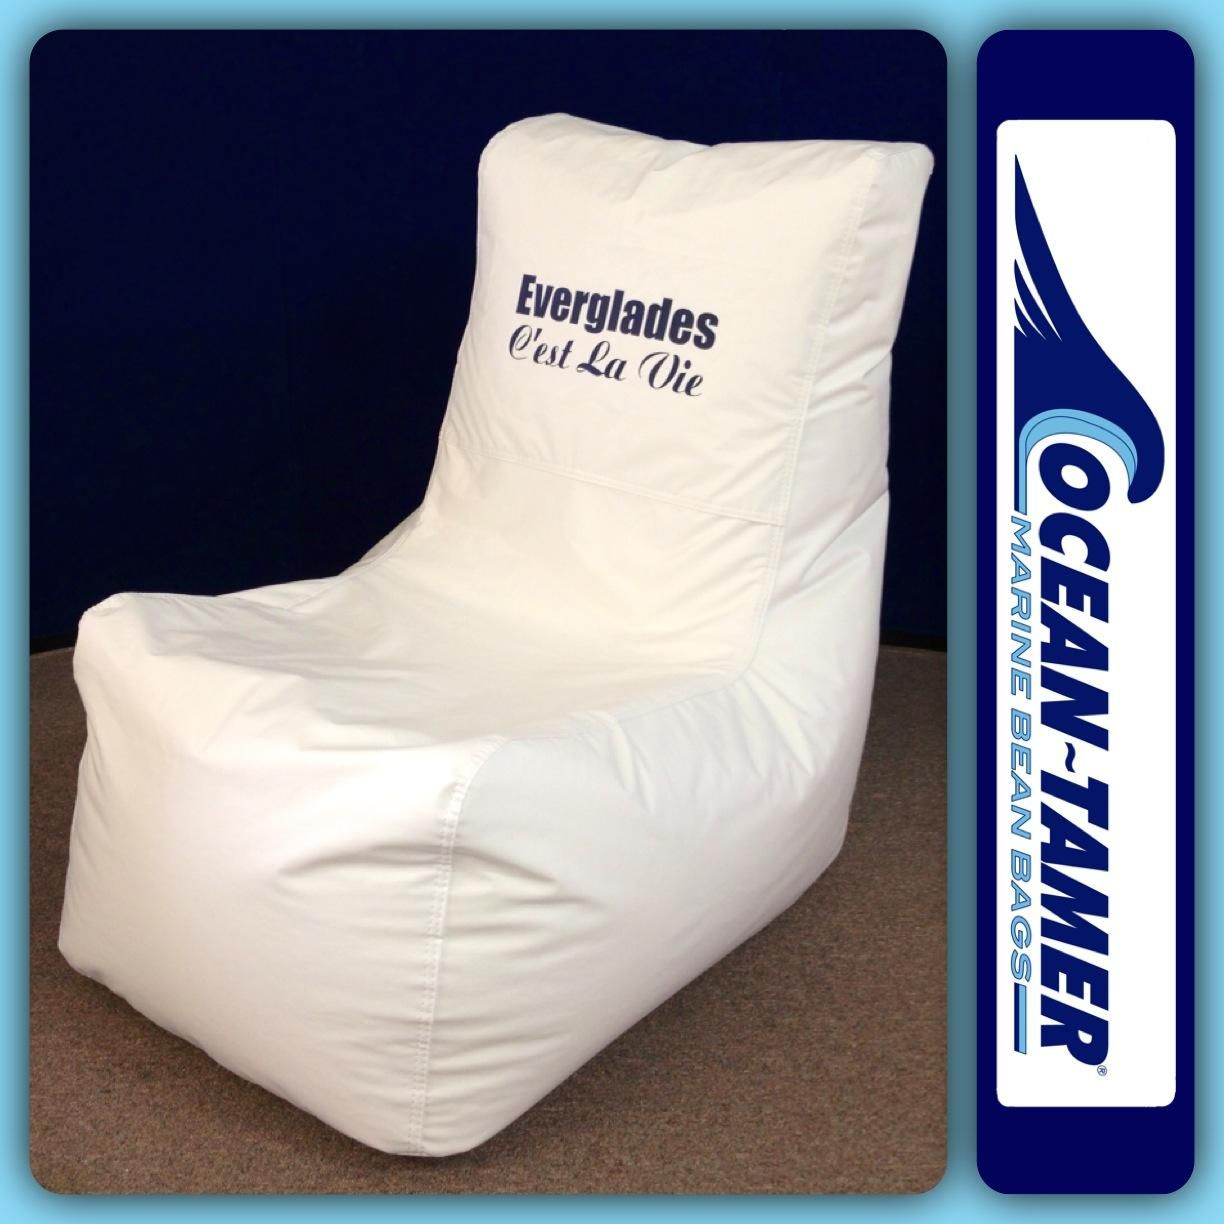 Ocean Tamer Wedge Marine Bean Bag Customized With The Official Everglades Boats Logo And